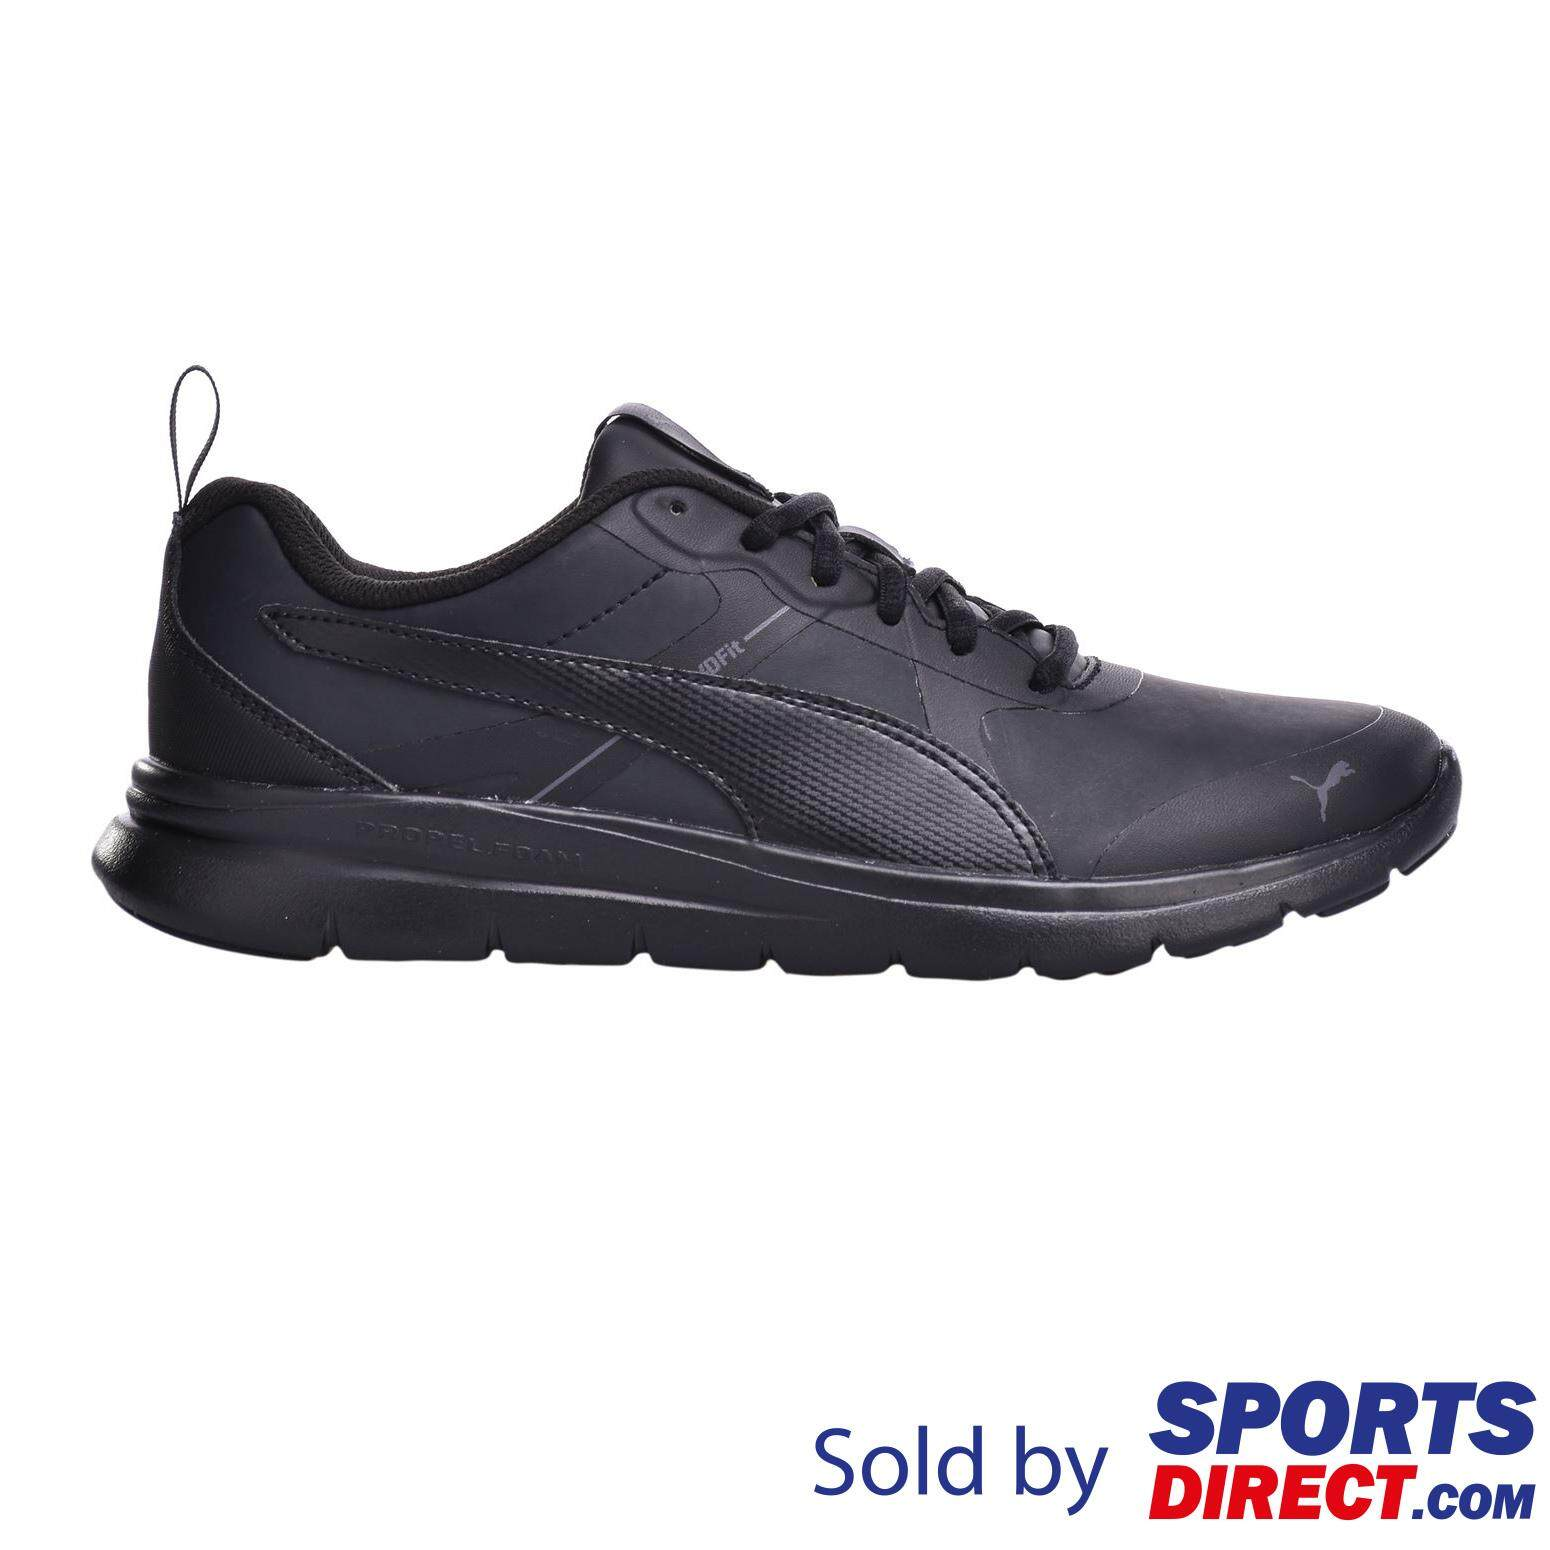 Puma Men S Sports Shoes Running Shoes Price In Malaysia Best